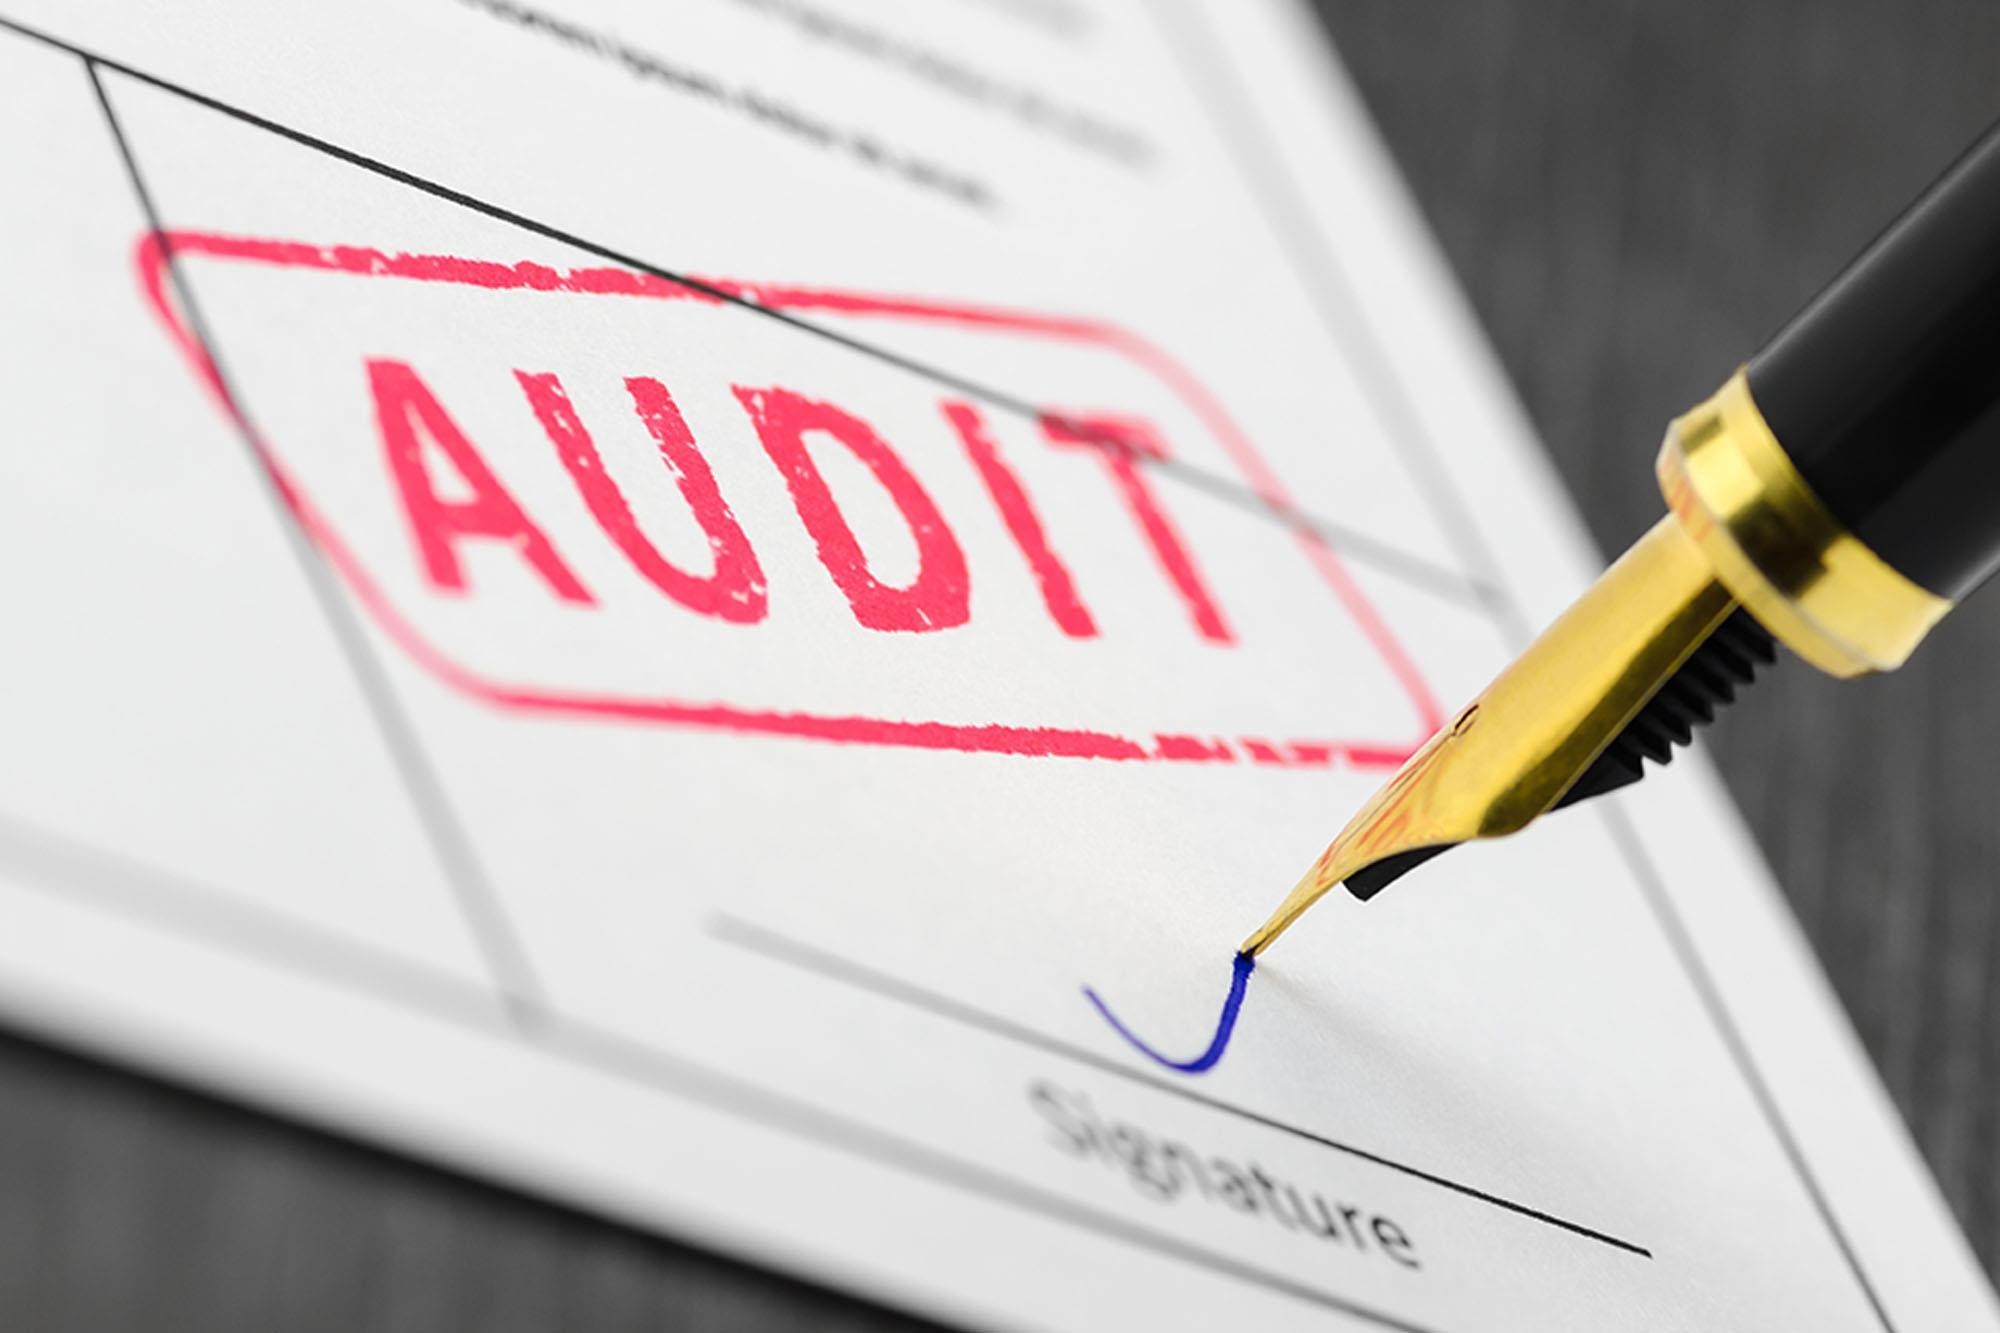 Audit Opinion and their Description